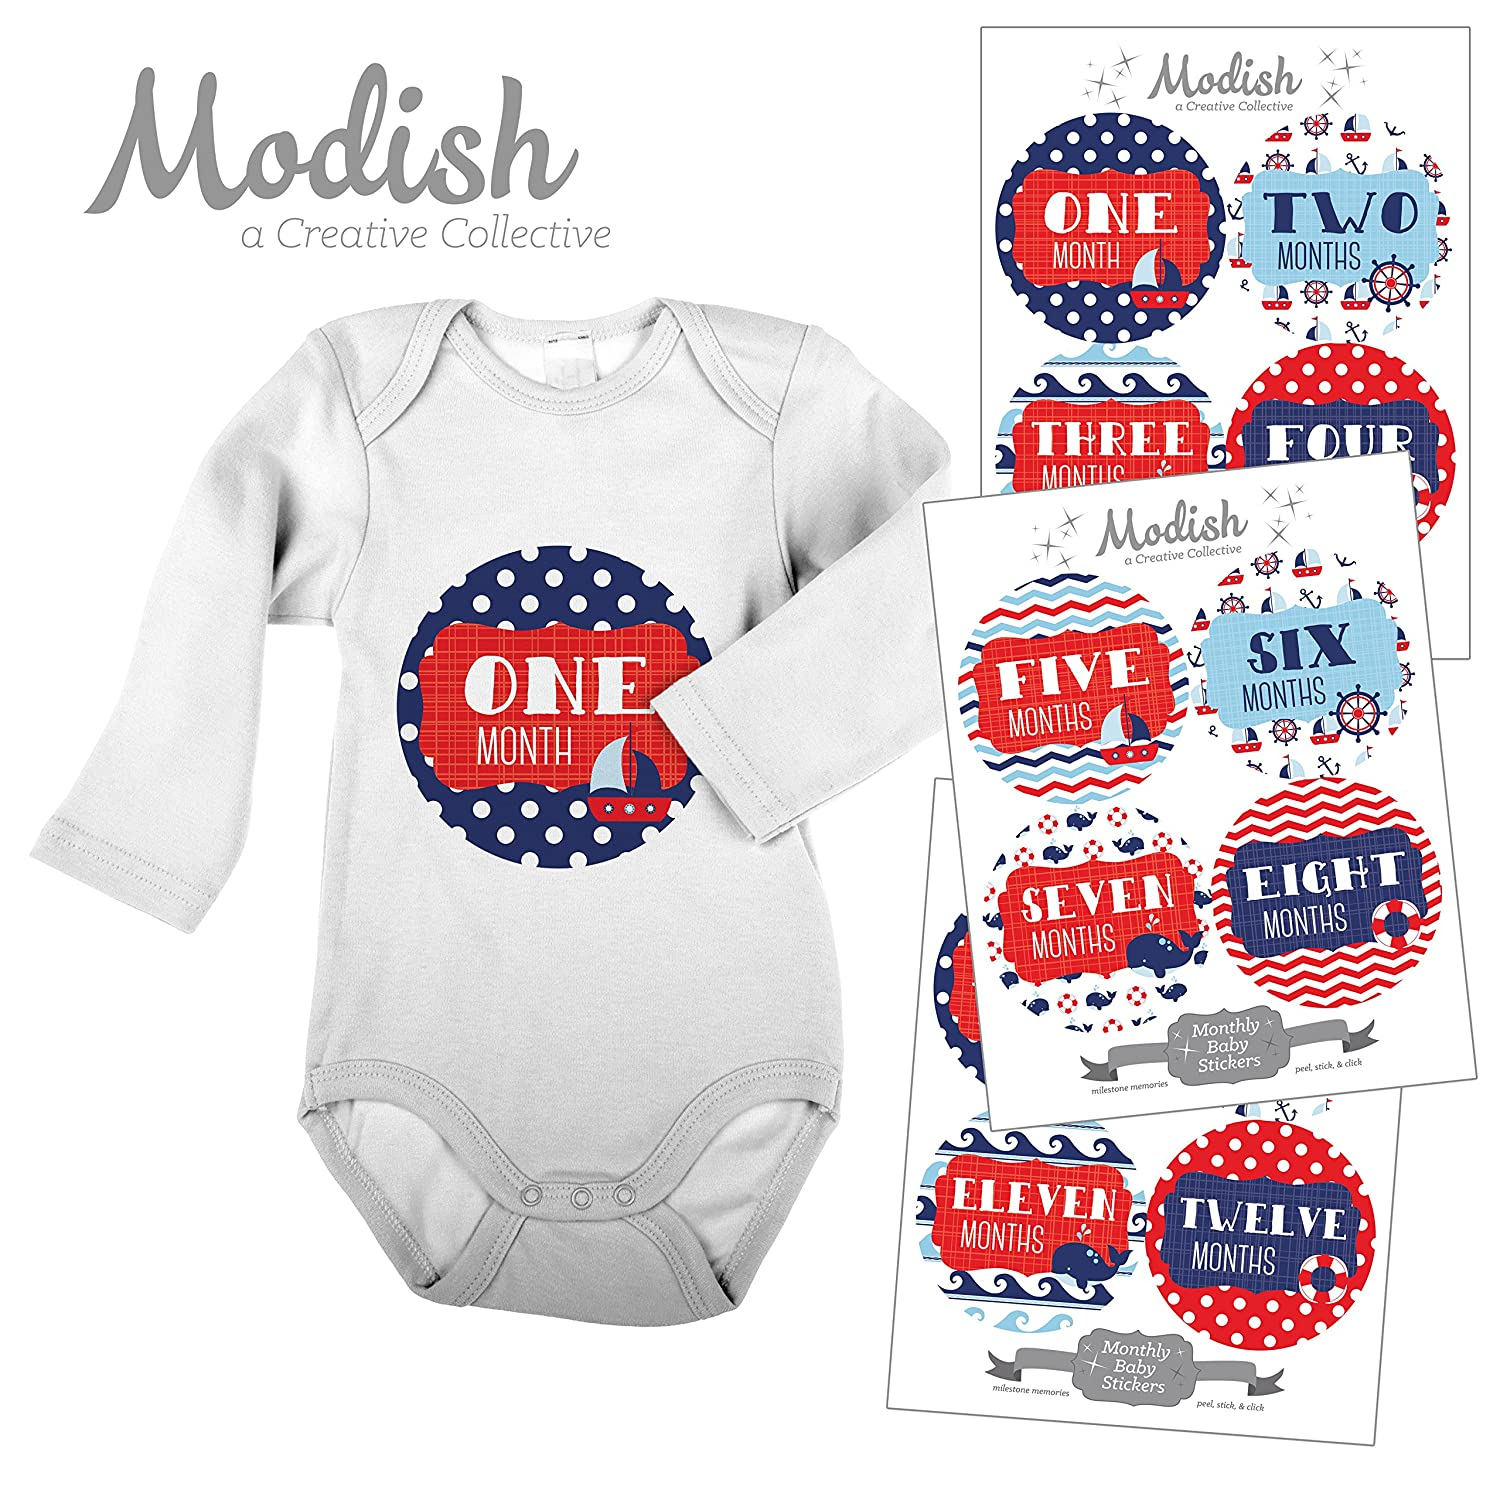 12 Monthly Baby Stickers, Waves, Nautical, Navy, Stickers Blue, 1-12, Red, Boy, Girl, Gender Neutral, Baby Belly Stickers, Monthly Onesie Stickers, First Year Stickers Months 1-12, Chevron, Sail Boat, Anchor, Ocean Waves, Whale, Baby Boy, Baby Girl, Gender Neutral by Modish - Creative Collective B00XGZ4UDE, ひめこうぐ:eabf3c50 --- integralved.hu